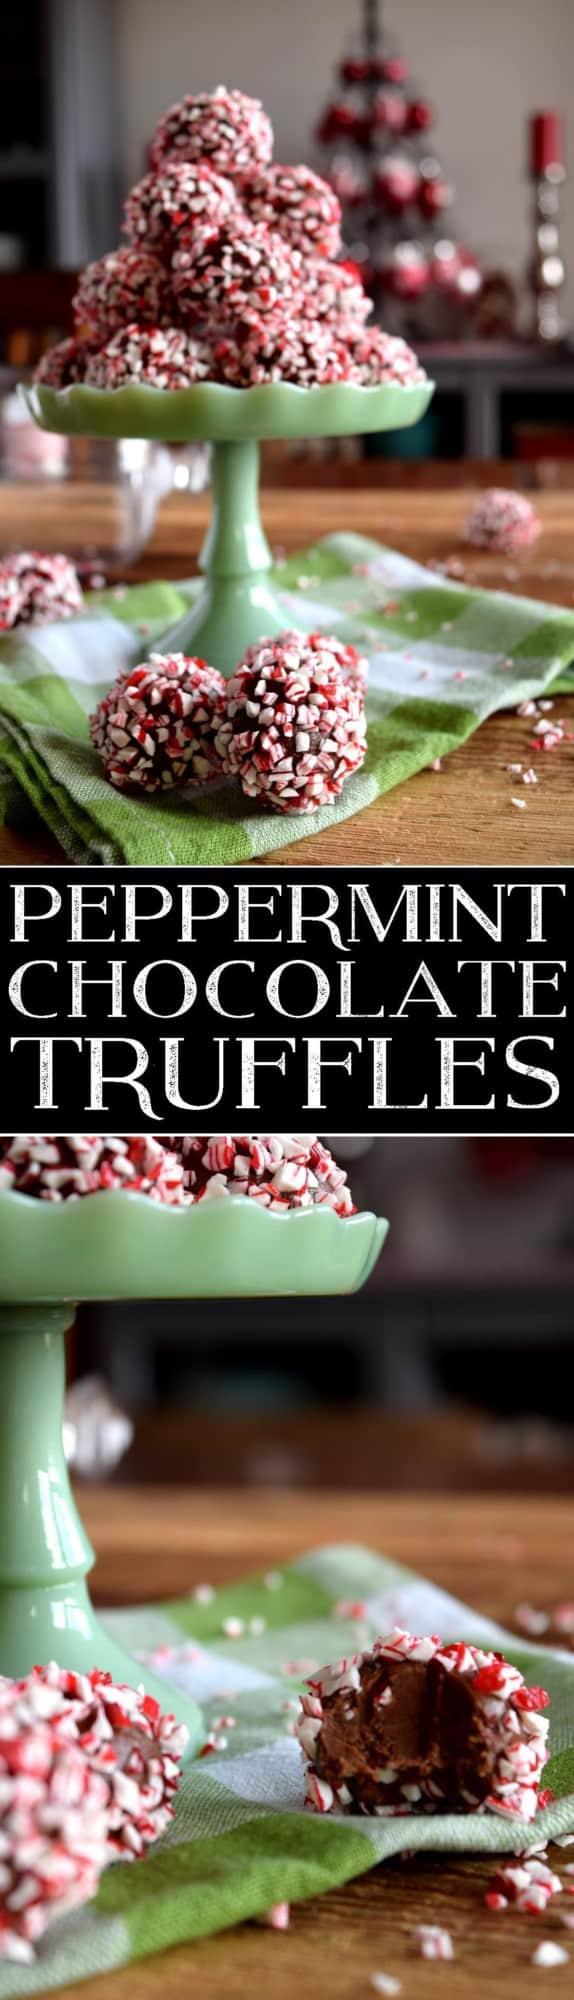 peppermint-chocolate-truffles